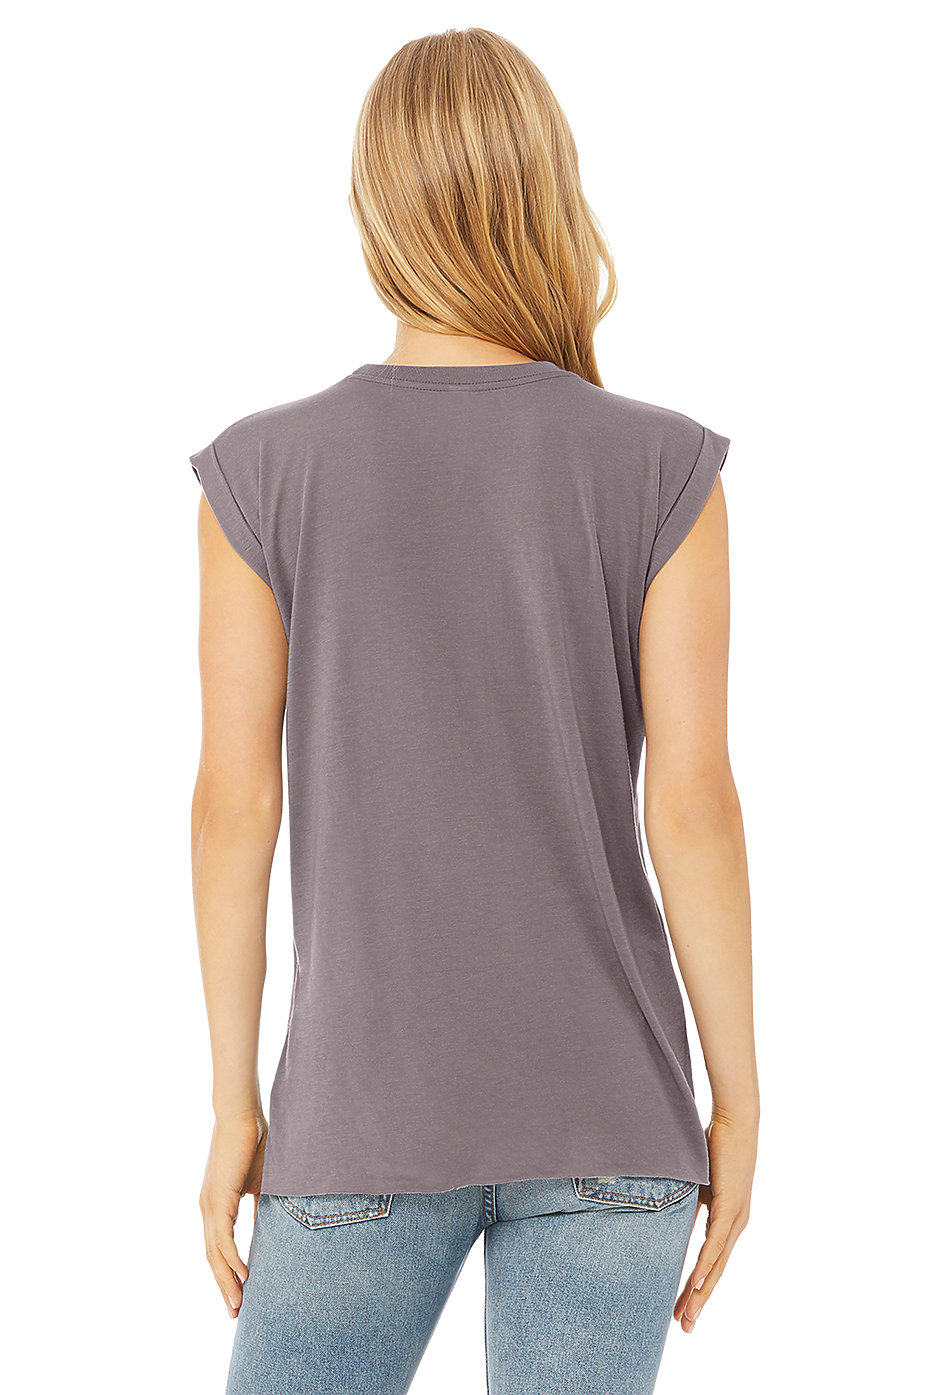 1ca96458aae 8804 Women s Flowy Muscle Tee with Rolled Cuff. Previous. Next